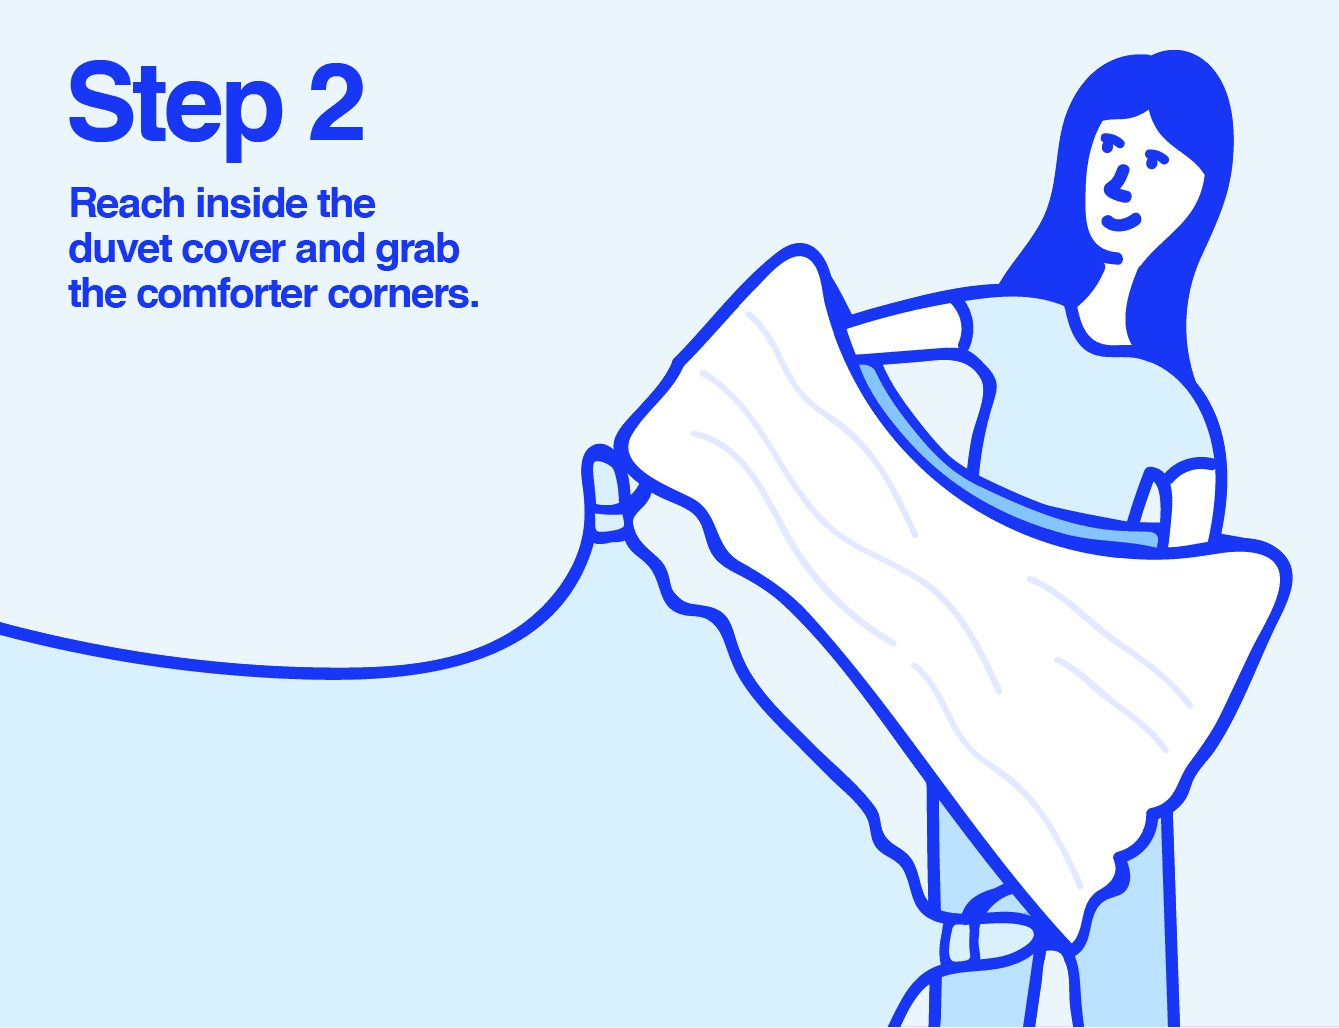 Info graphic of a woman placing a comforter into a duvet cover